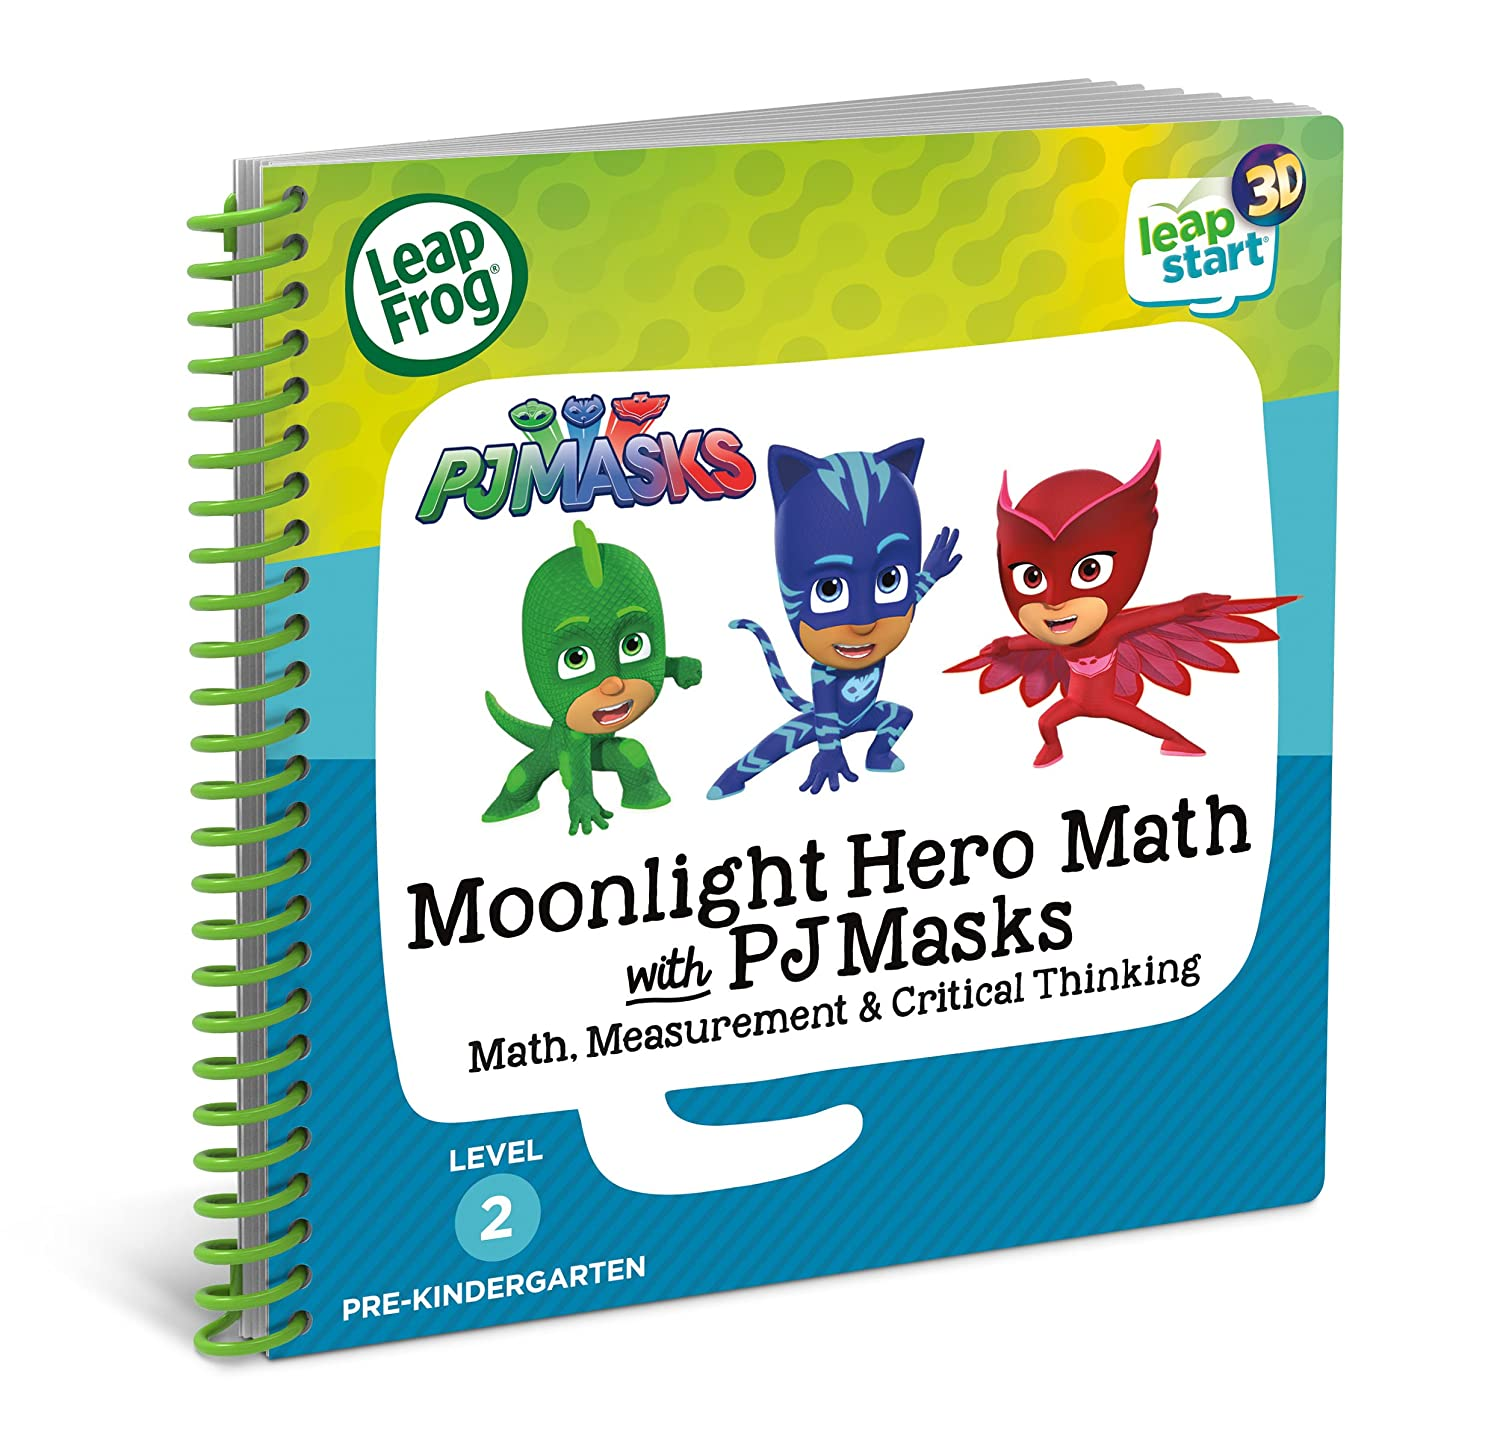 Amazon.com: LeapFrog LeapStart 3D Moonlight Hero Math with PJ Masks Book: Toys & Games